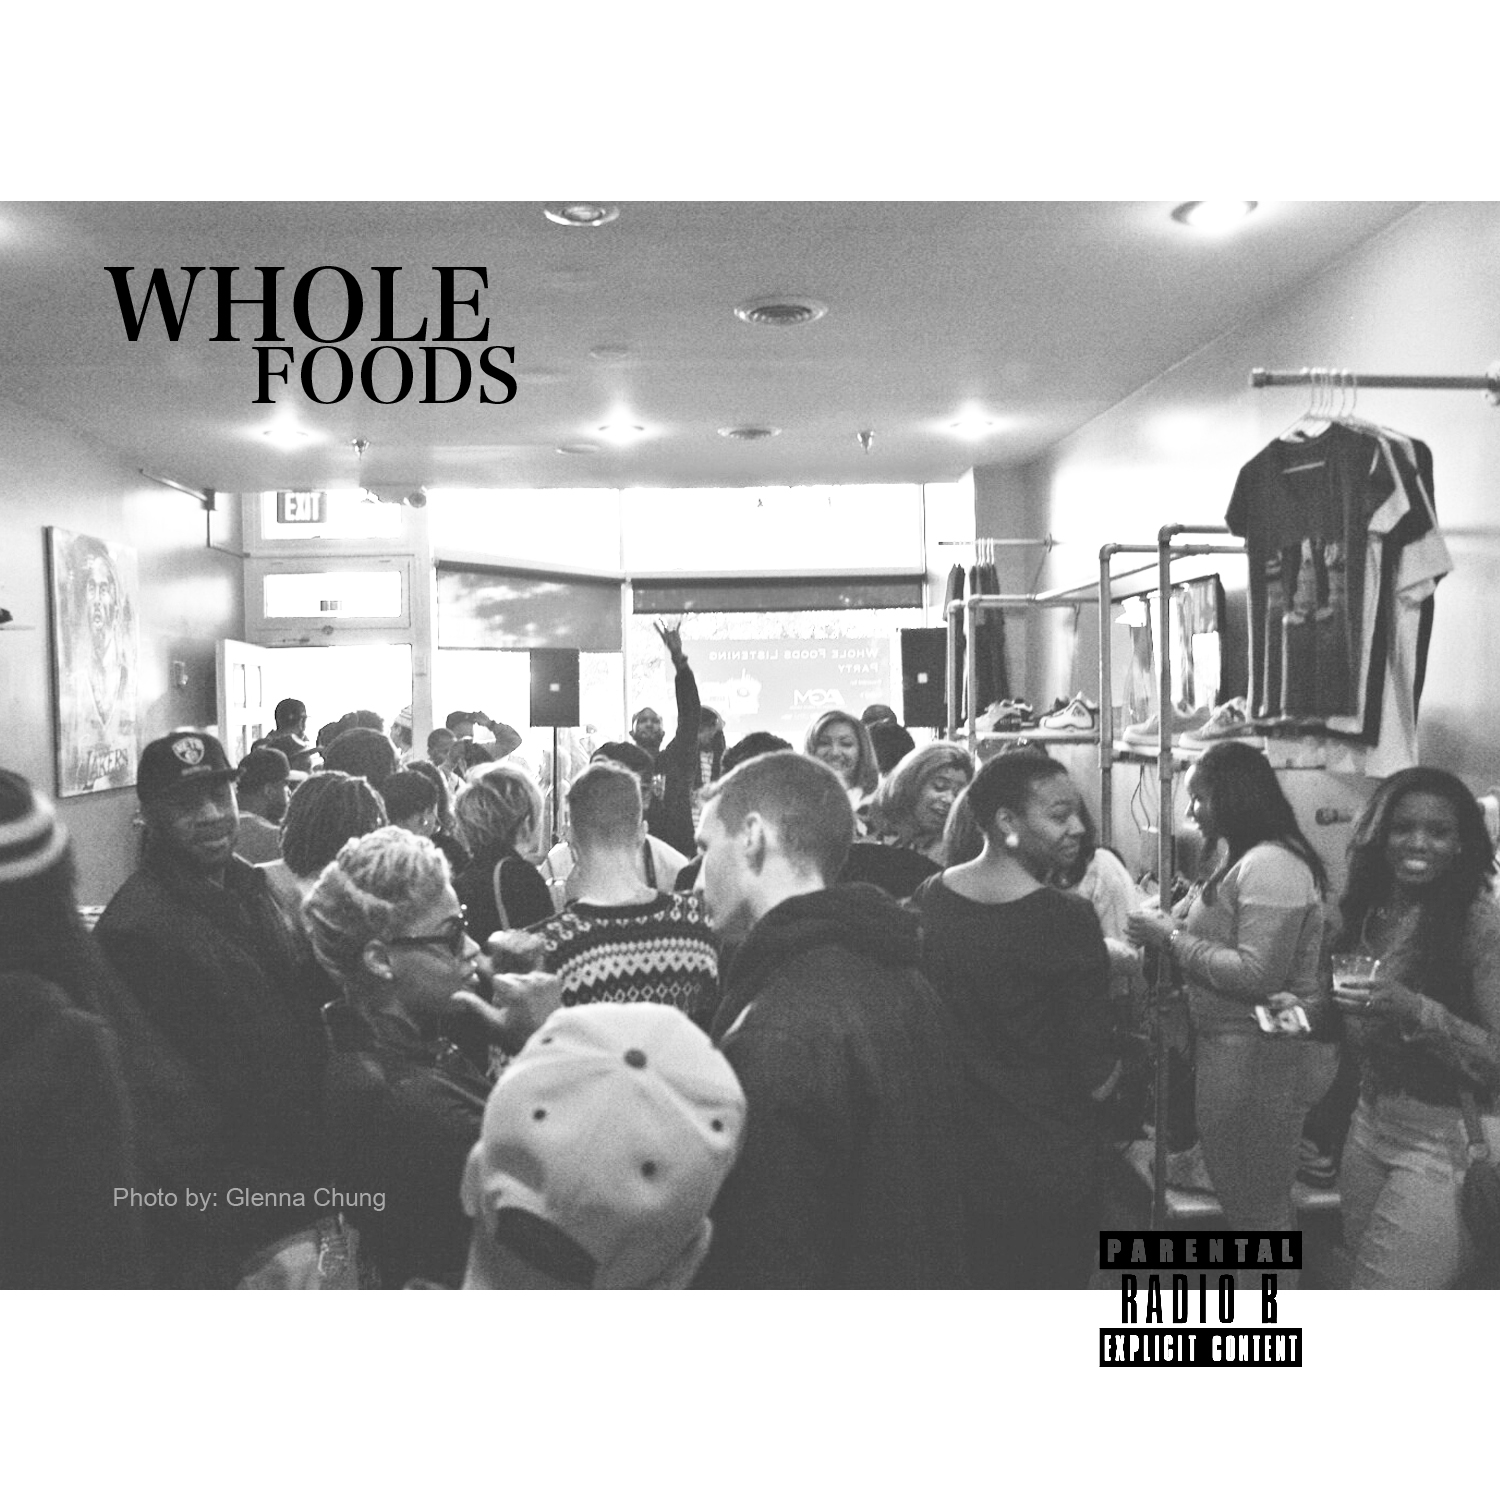 Whole Foods Lp - Available on all digital platforms